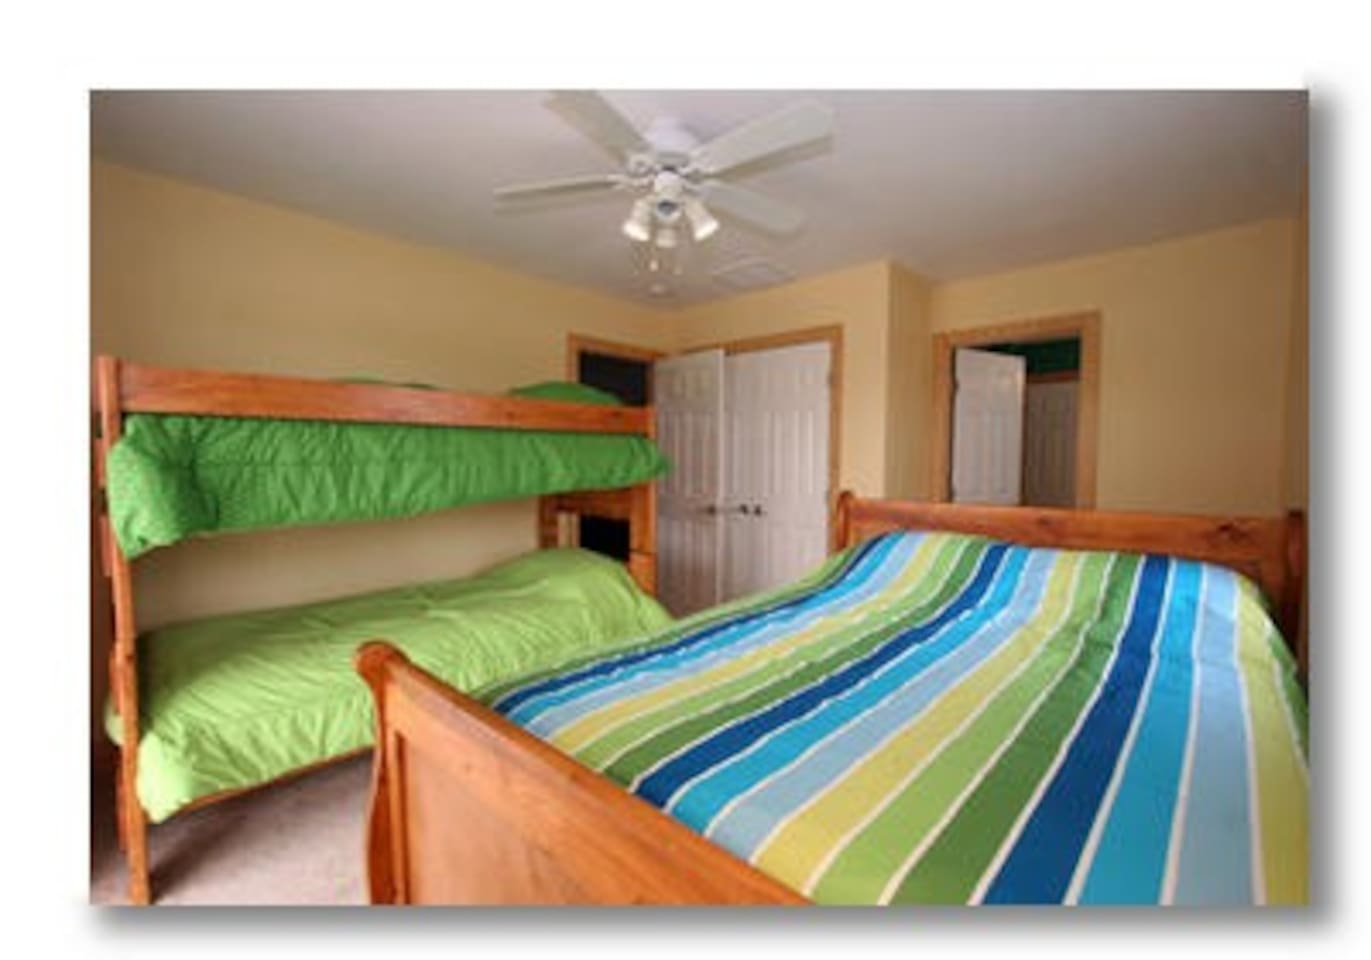 The Bunk Room